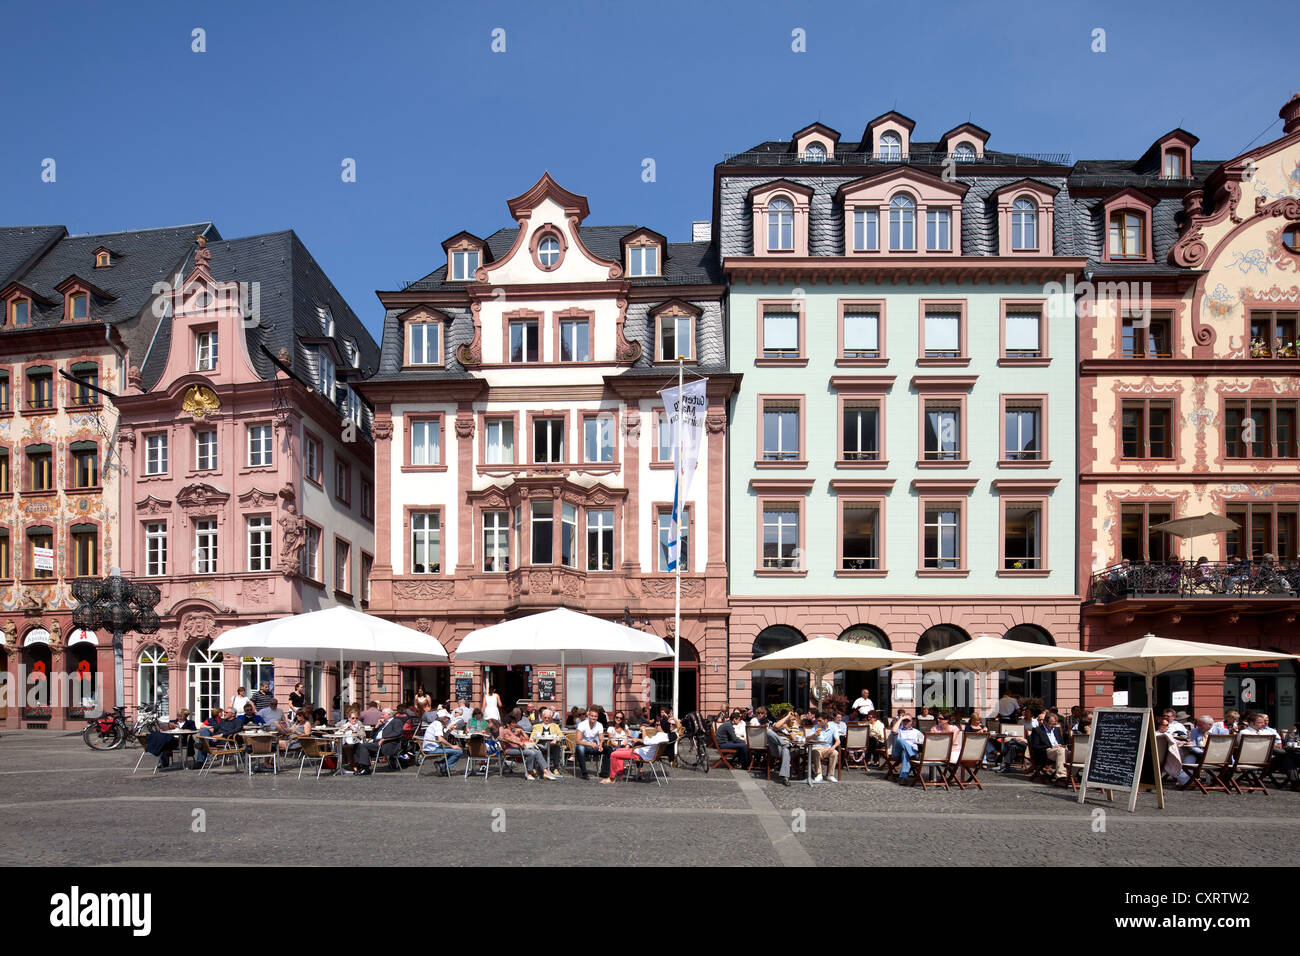 Restored town houses on Markt square, commercial buildings, Mainz, Rhineland-Palatinate, PublicGround - Stock Image